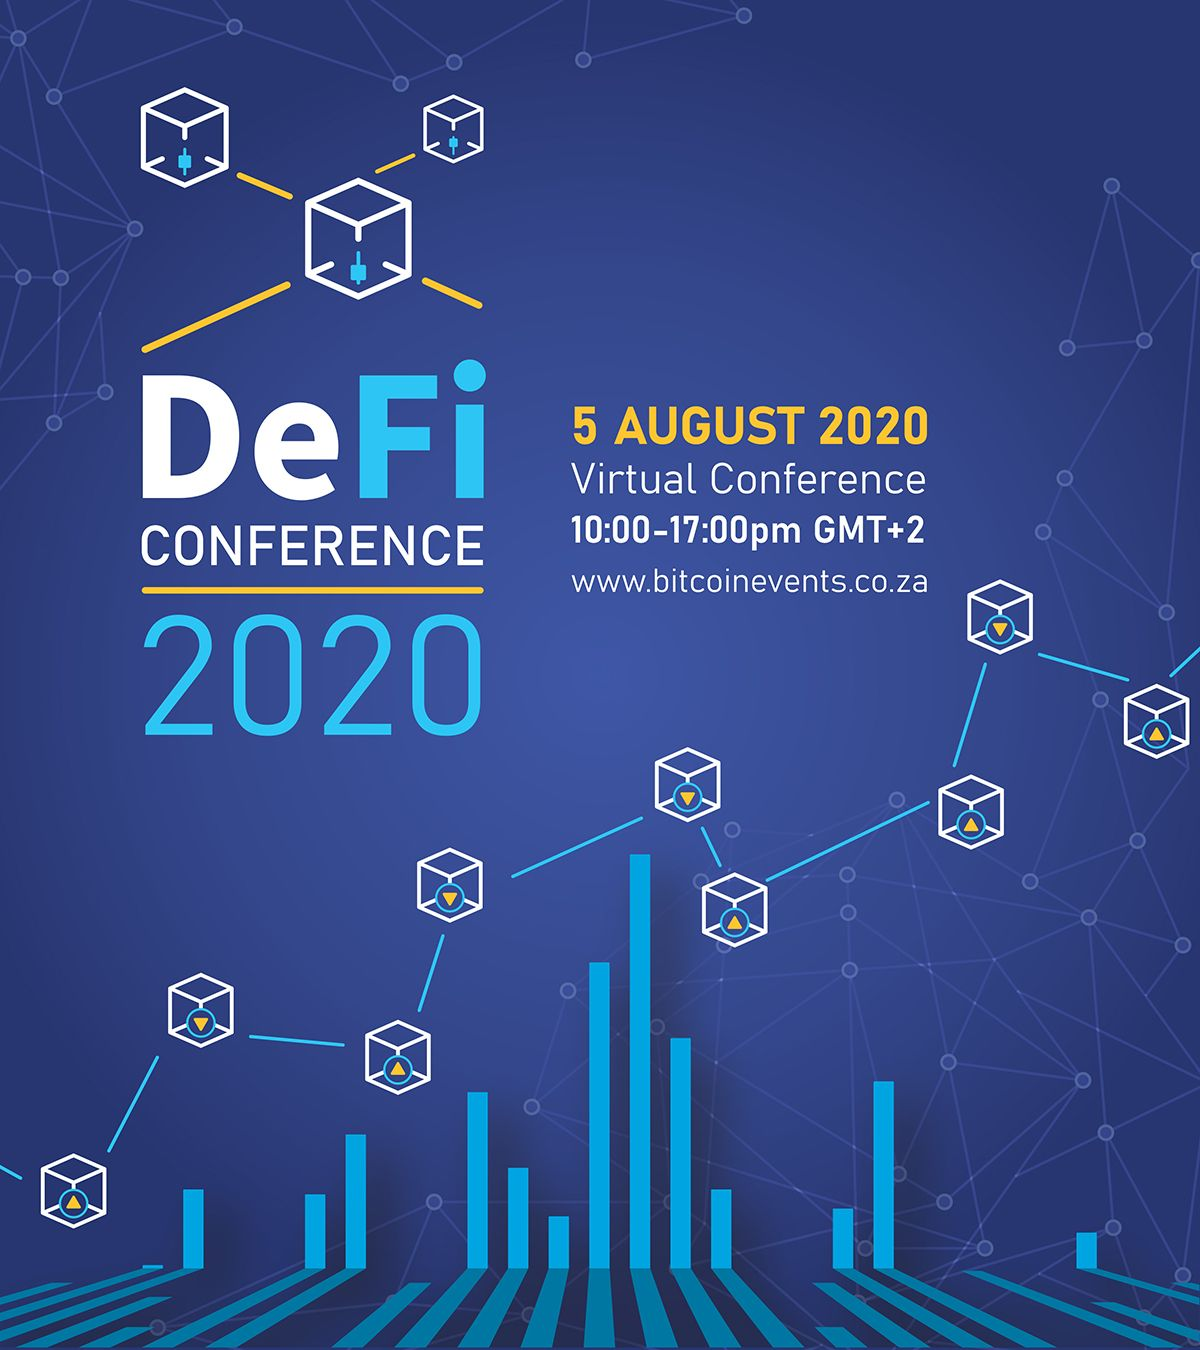 DEFI-CONFER-2020-AD-for-media